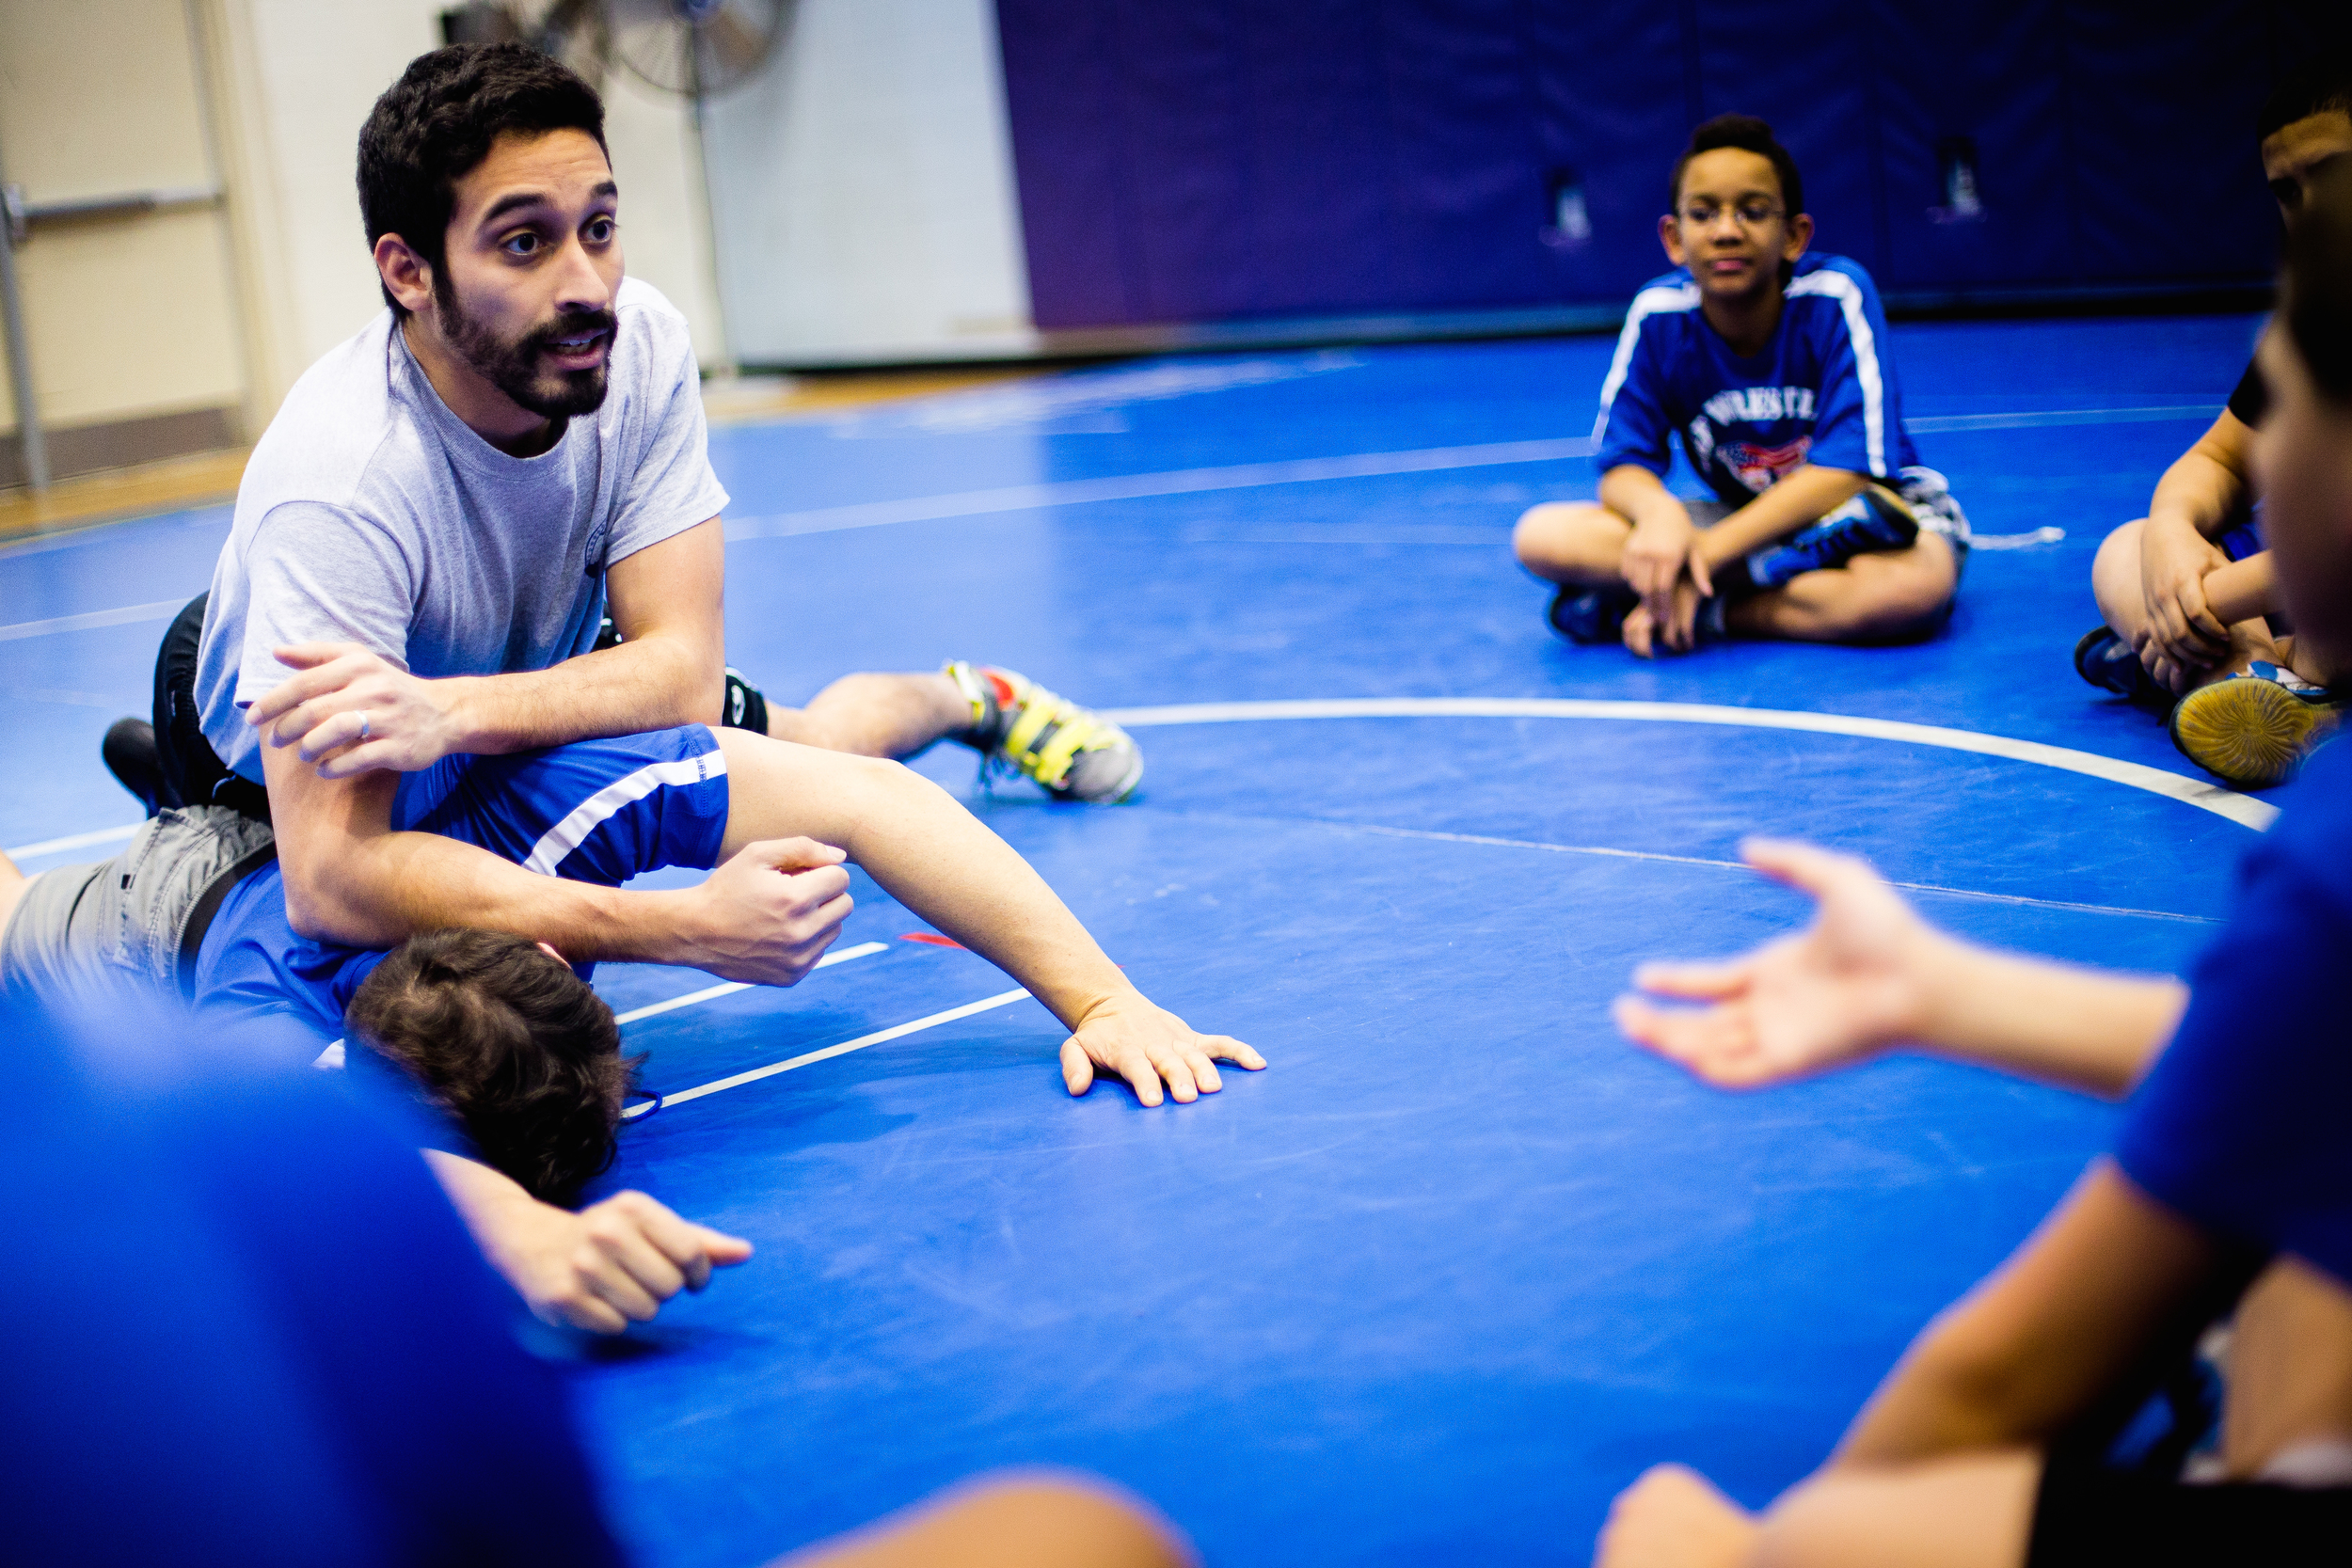 Boston Youth wrestling trainging on the 27th of Feb, 2015. Photo by Ann Wang